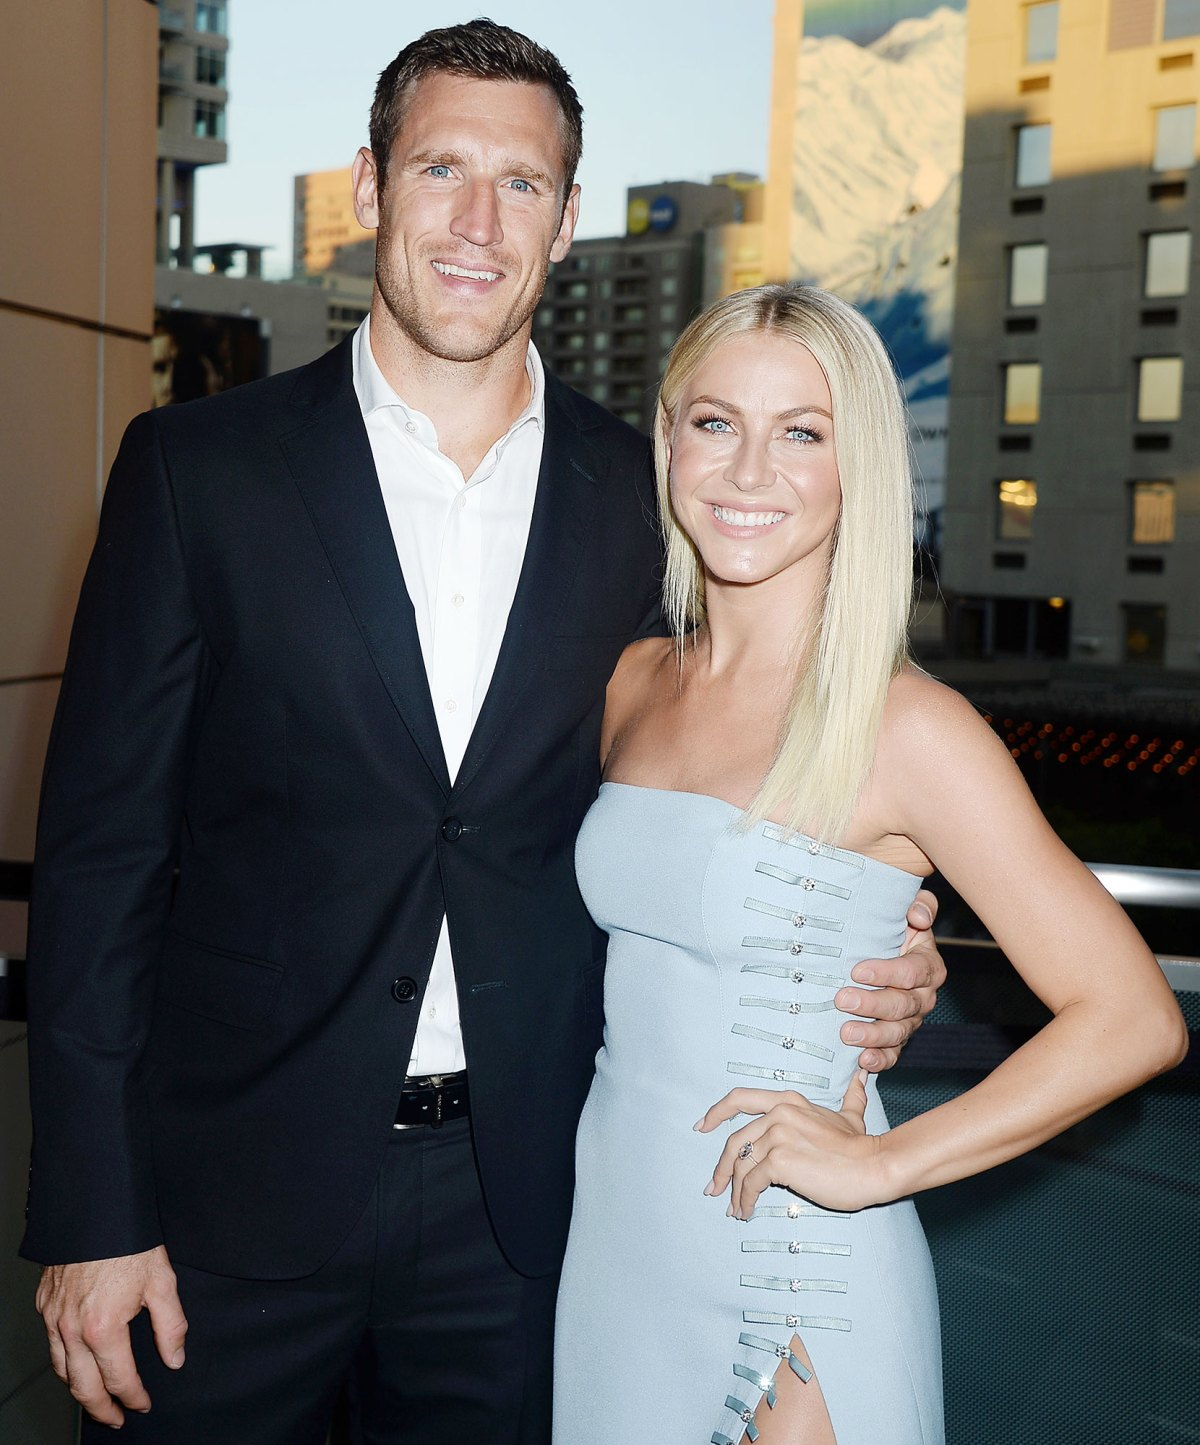 Julianne hough dating country singer from dating to diapers